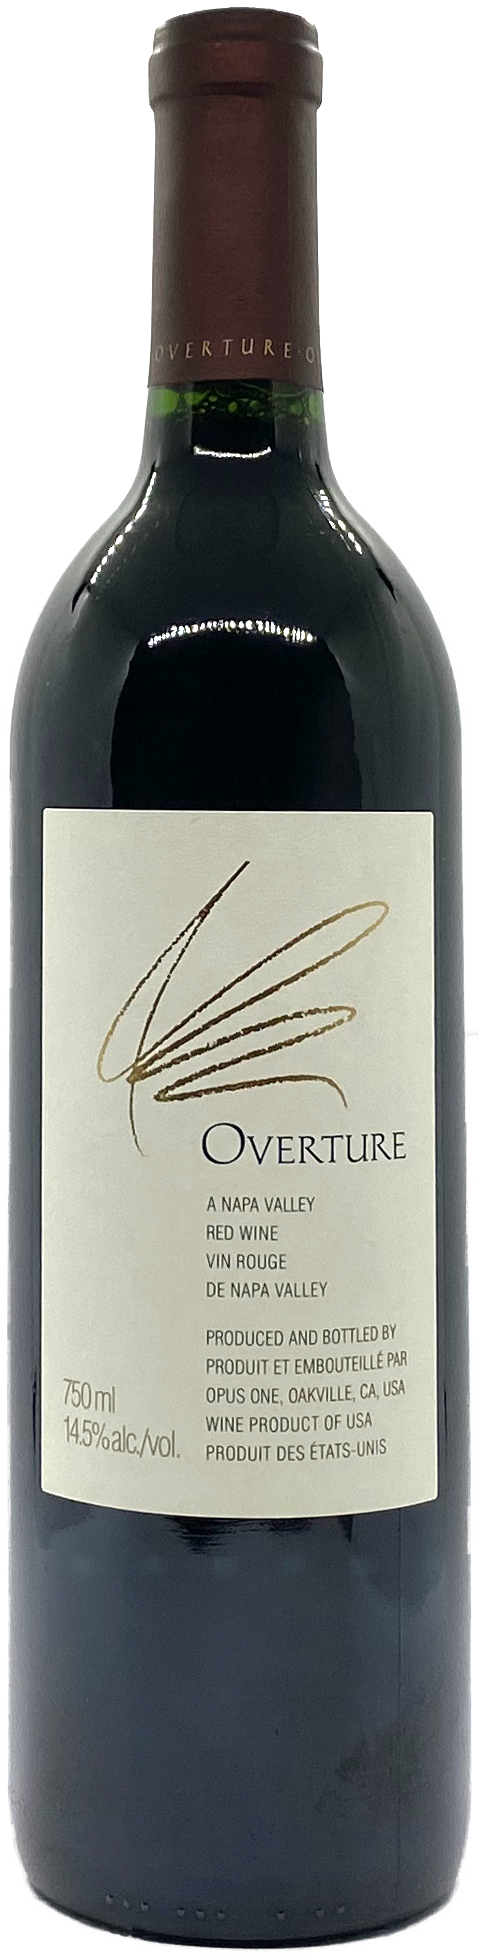 Opus One Cabernet Sauvignon Blend Overture Napa Valley